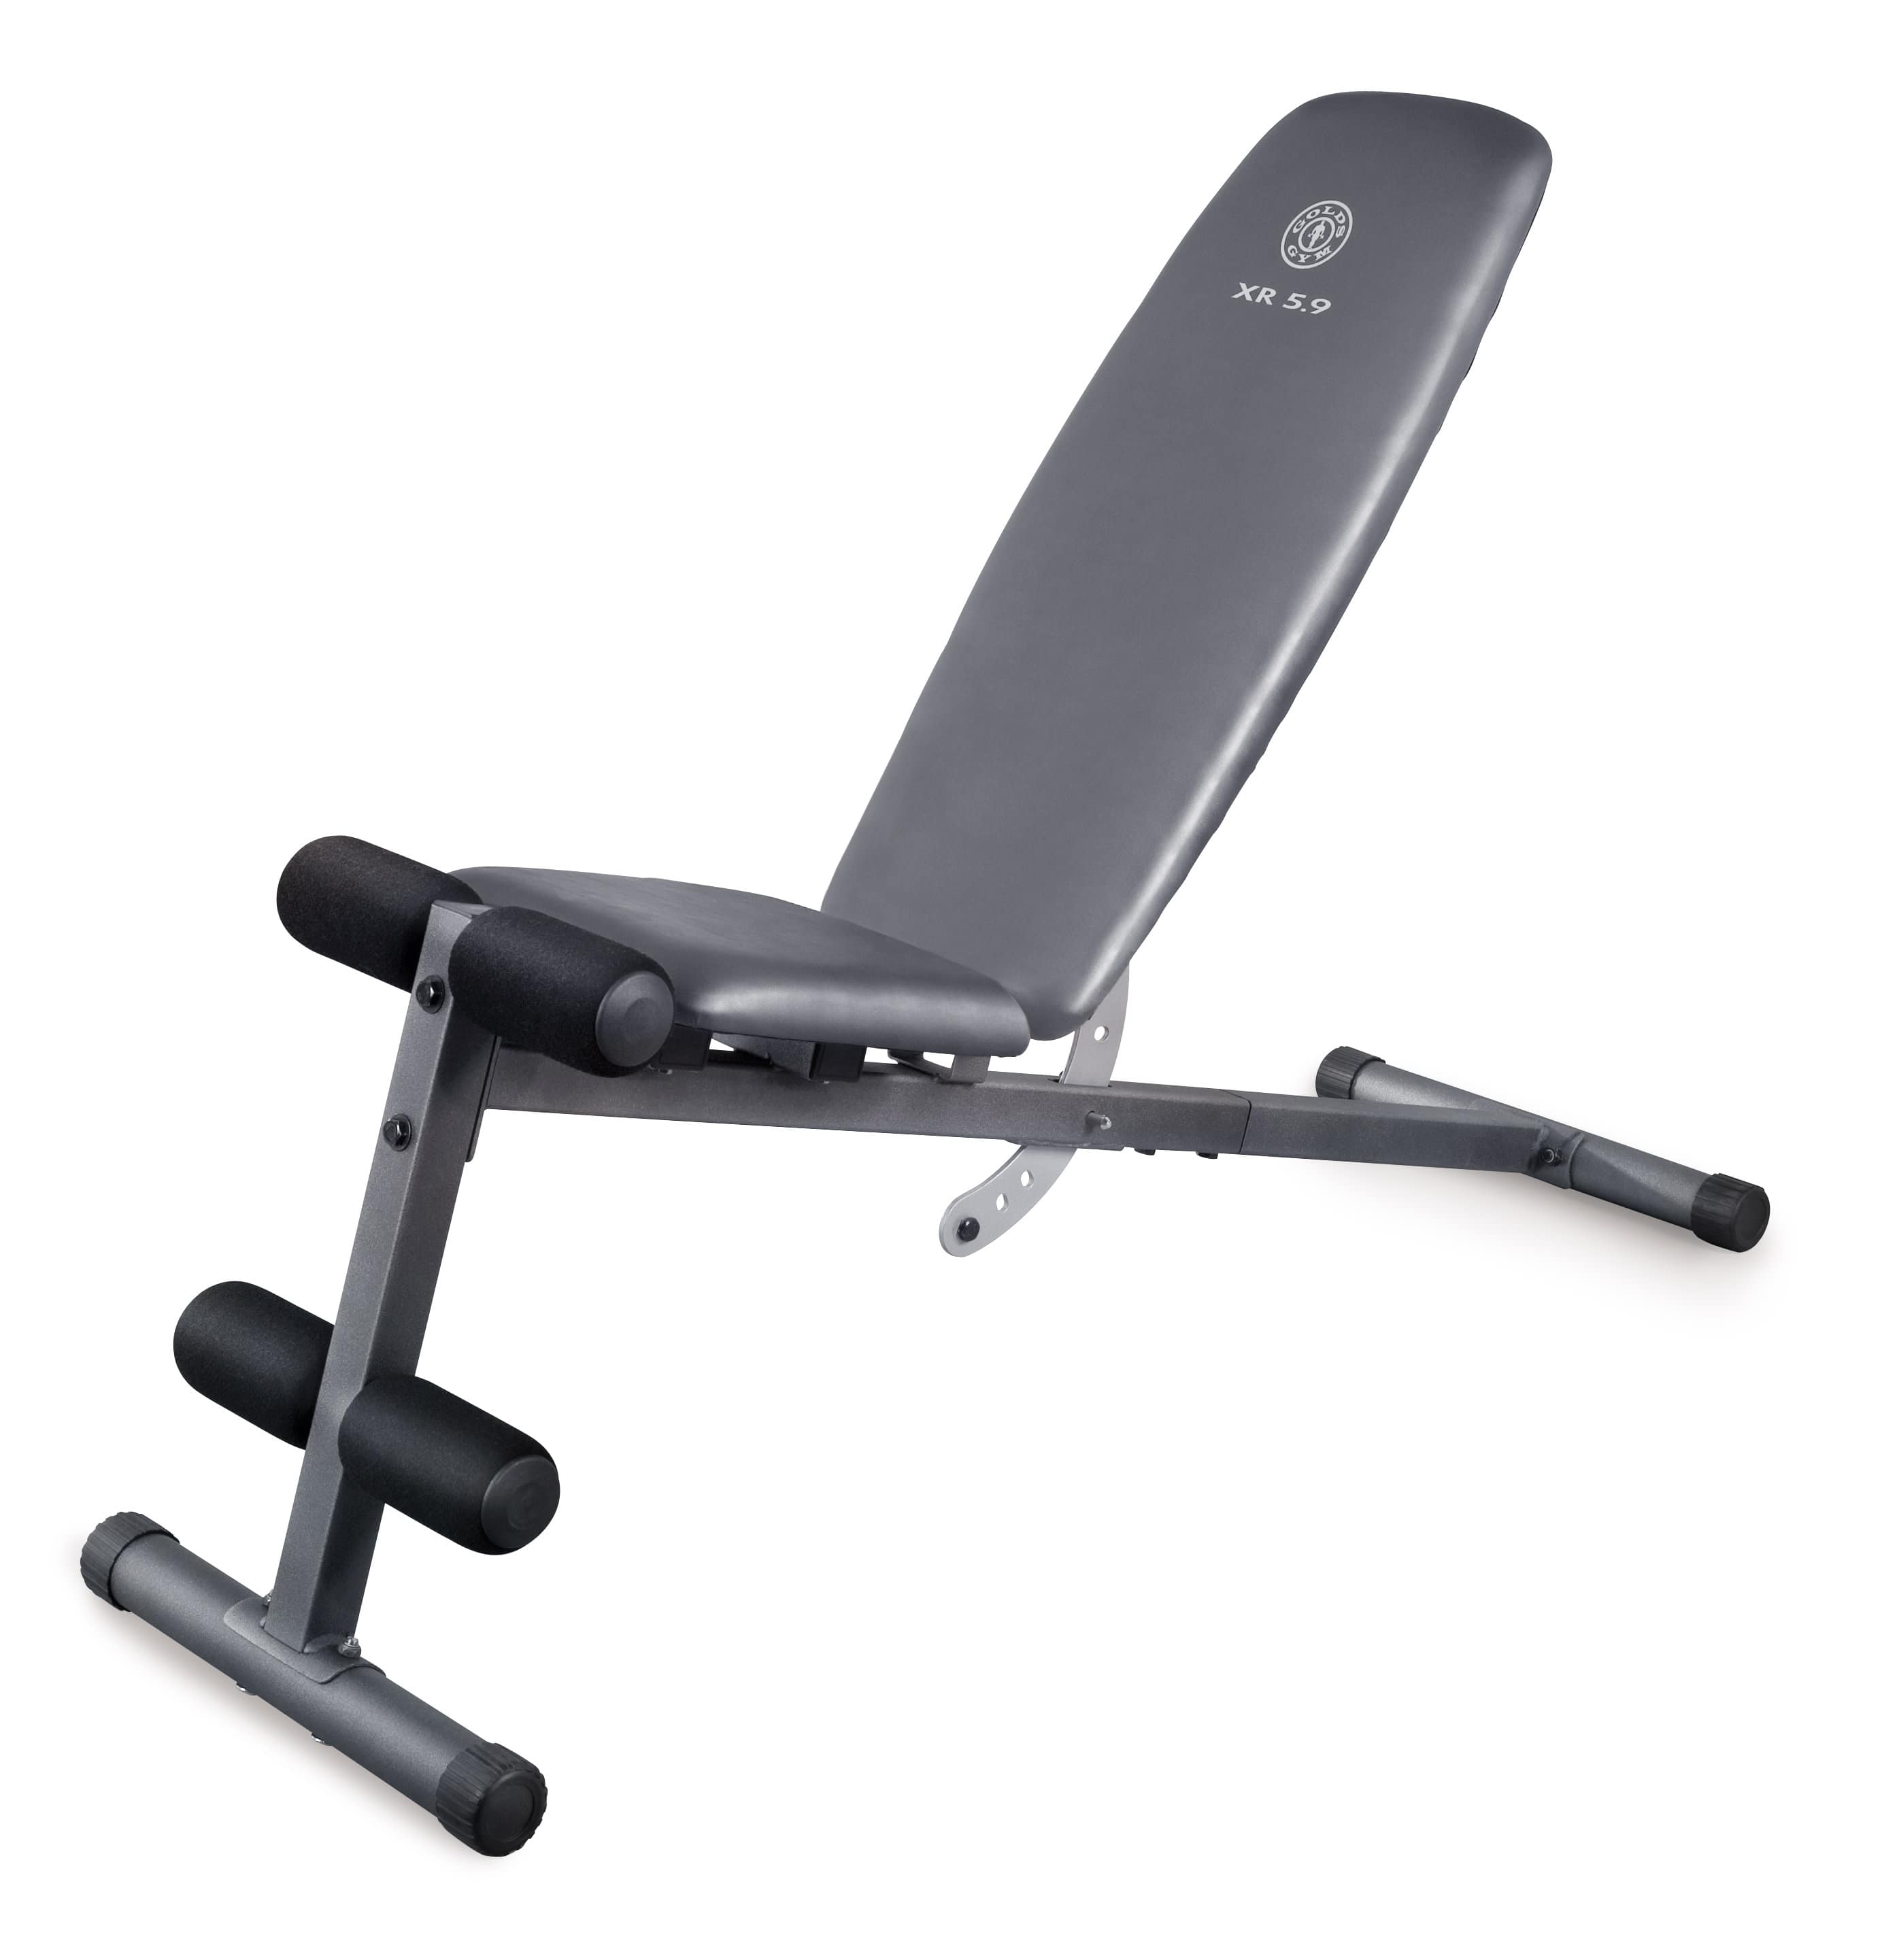 Weider XR 5.9 Adjustable Slant Workout Bench with 4-Roll Leg Lockdown and Exercise Chart (back in Stock) - $49 @ WalMart